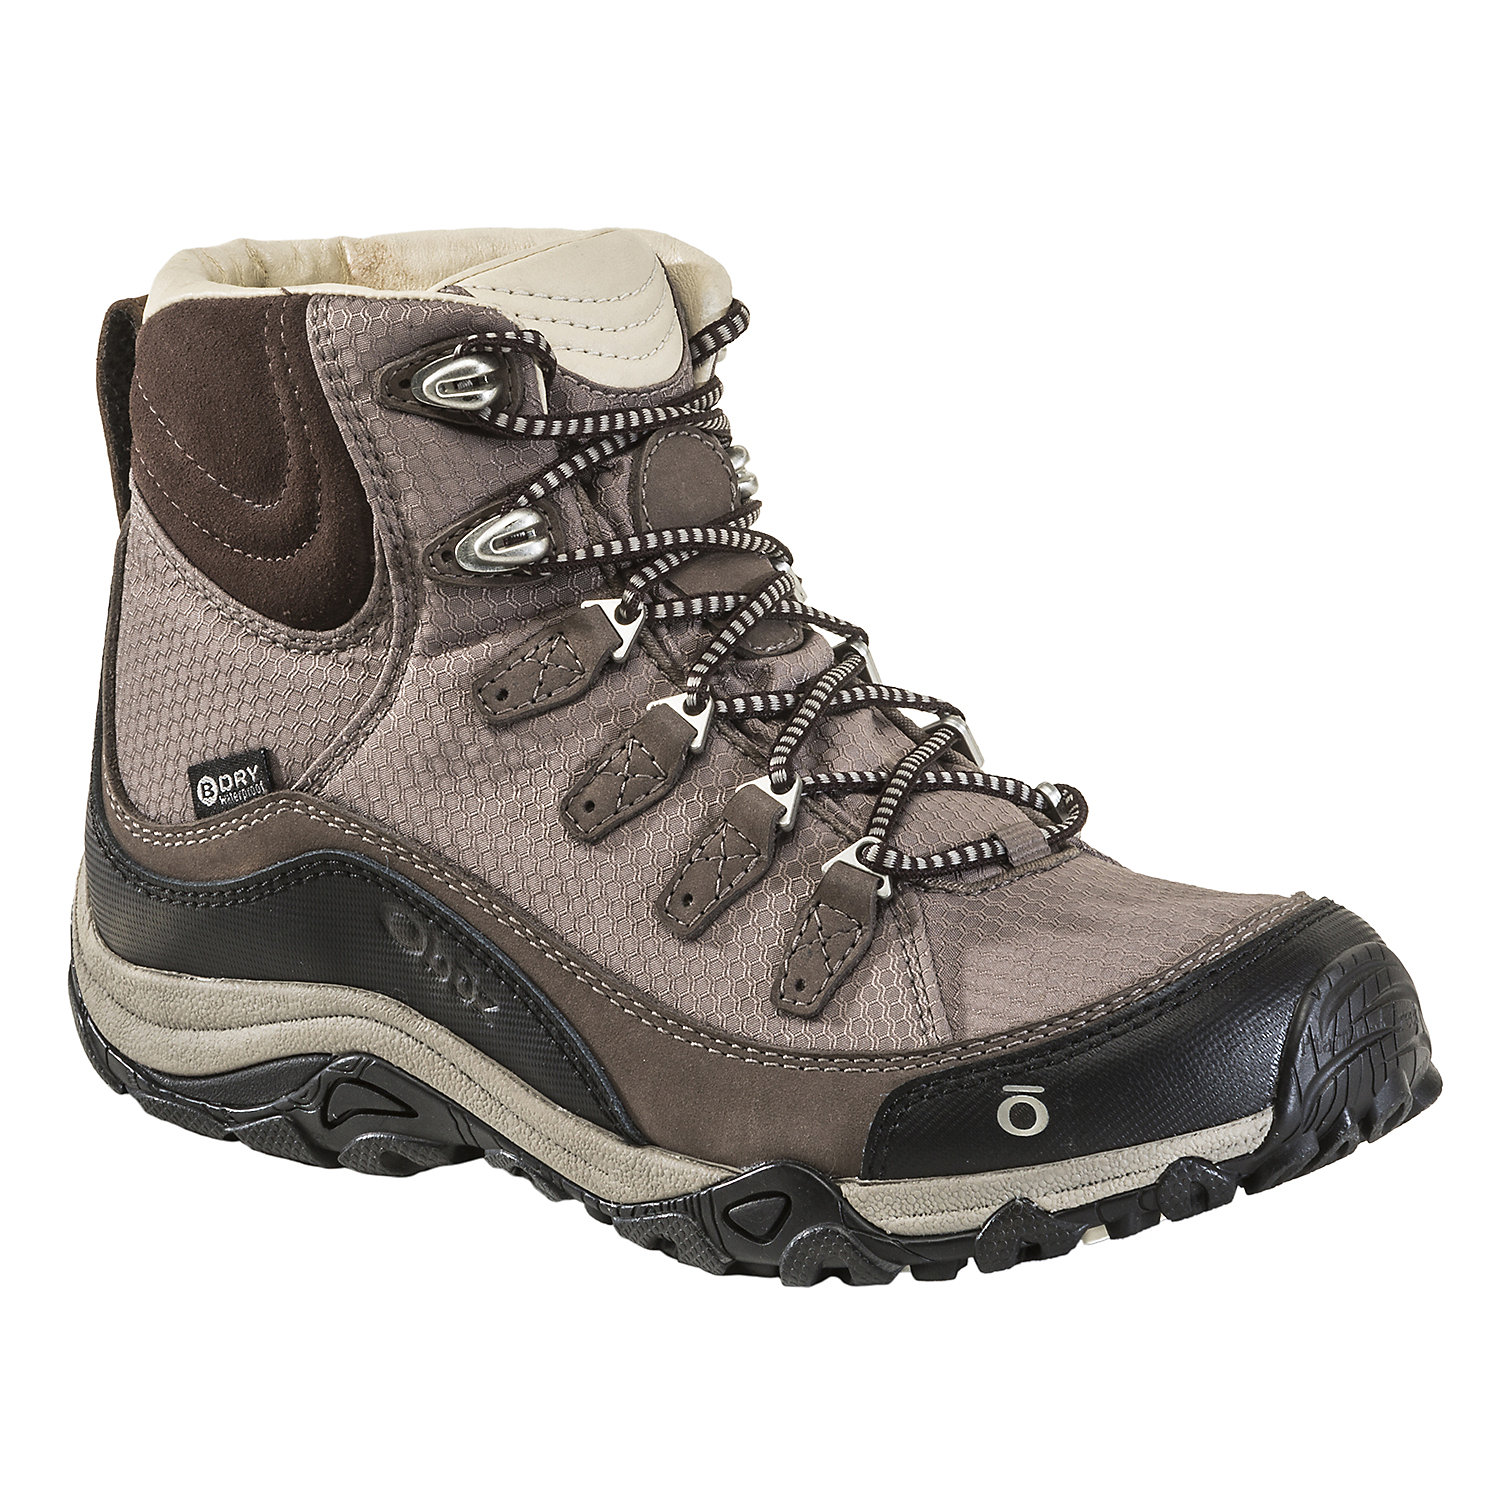 23e2d0995db Oboz Women's Juniper Mid BDry Boot